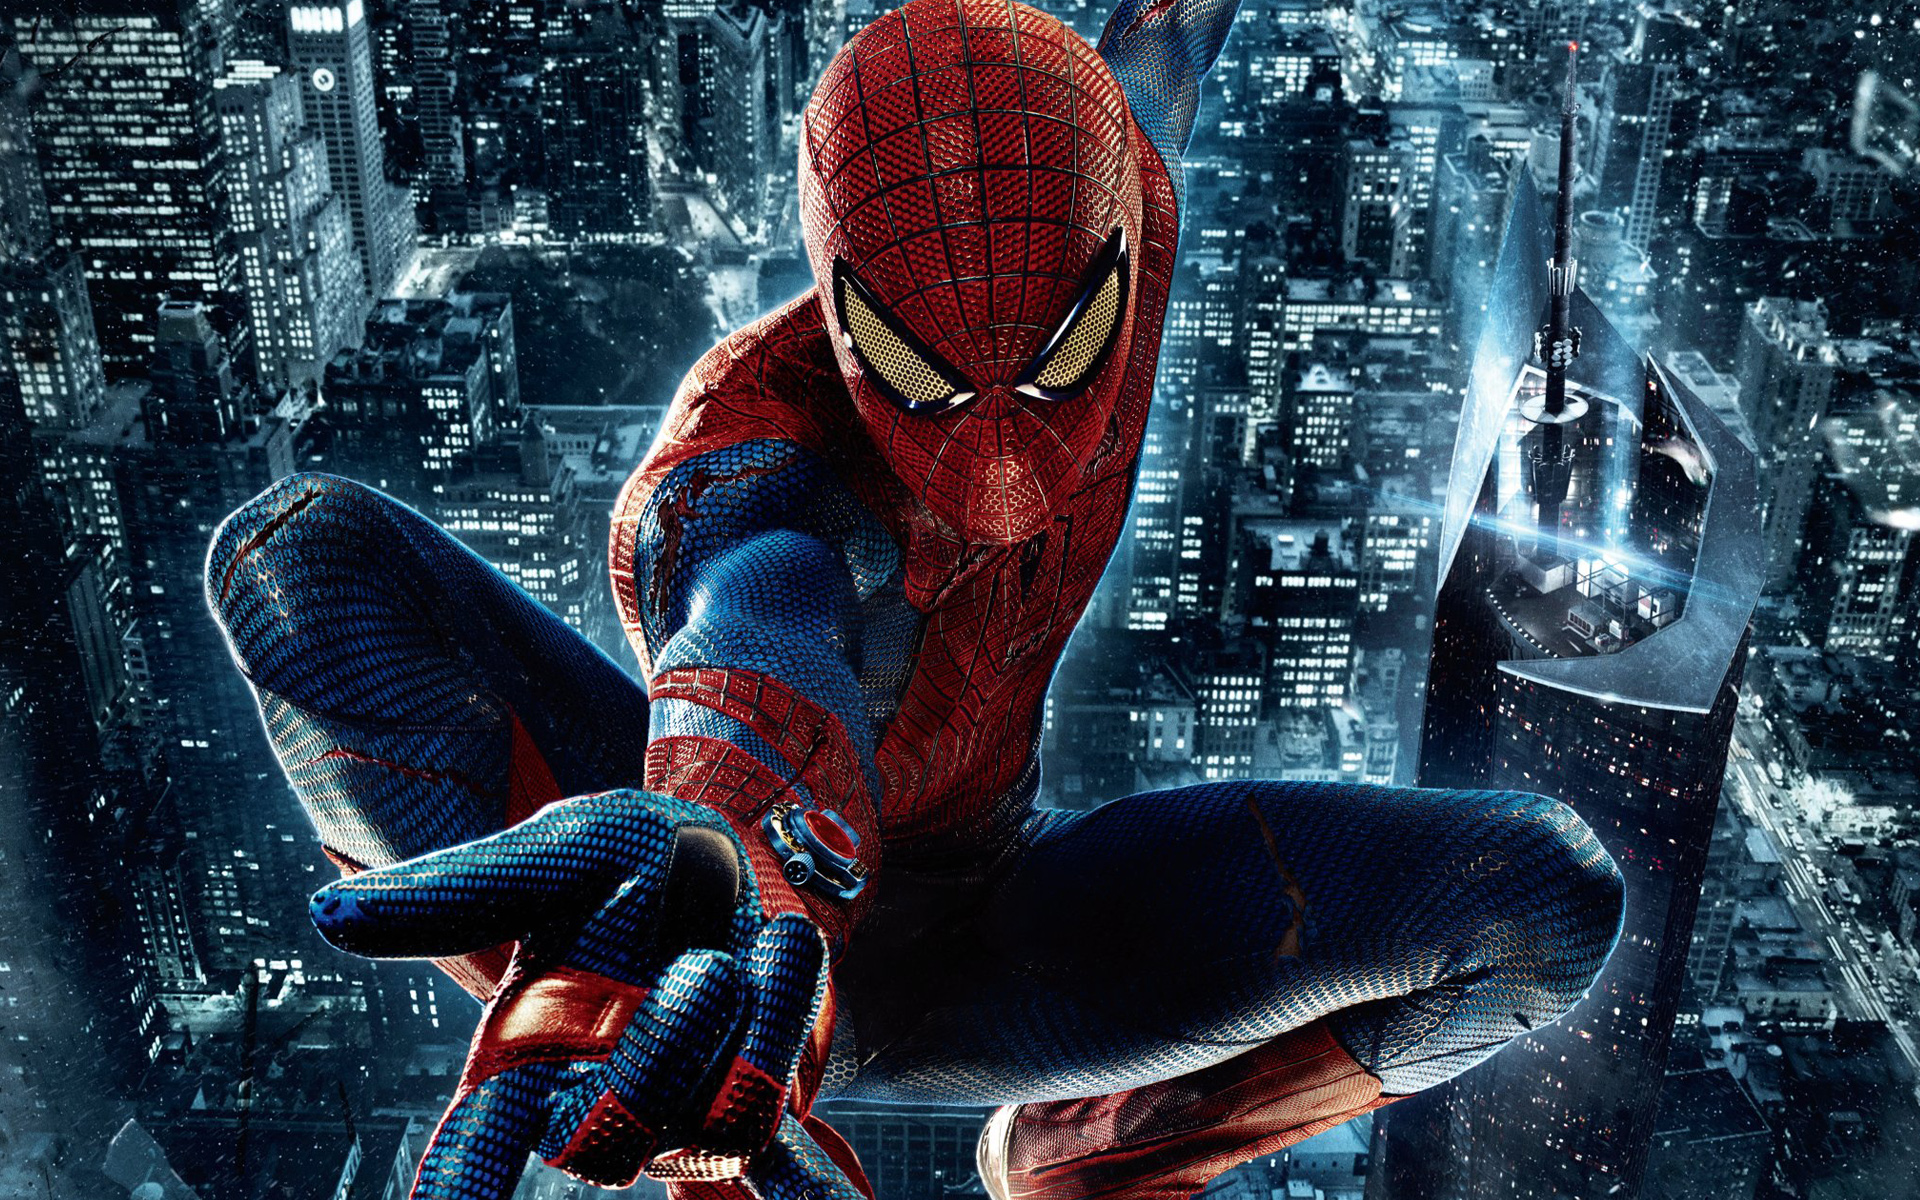 Subida] The Amazing Spider Man [1080p] [Brip] [MG]   Taringa 1920x1200